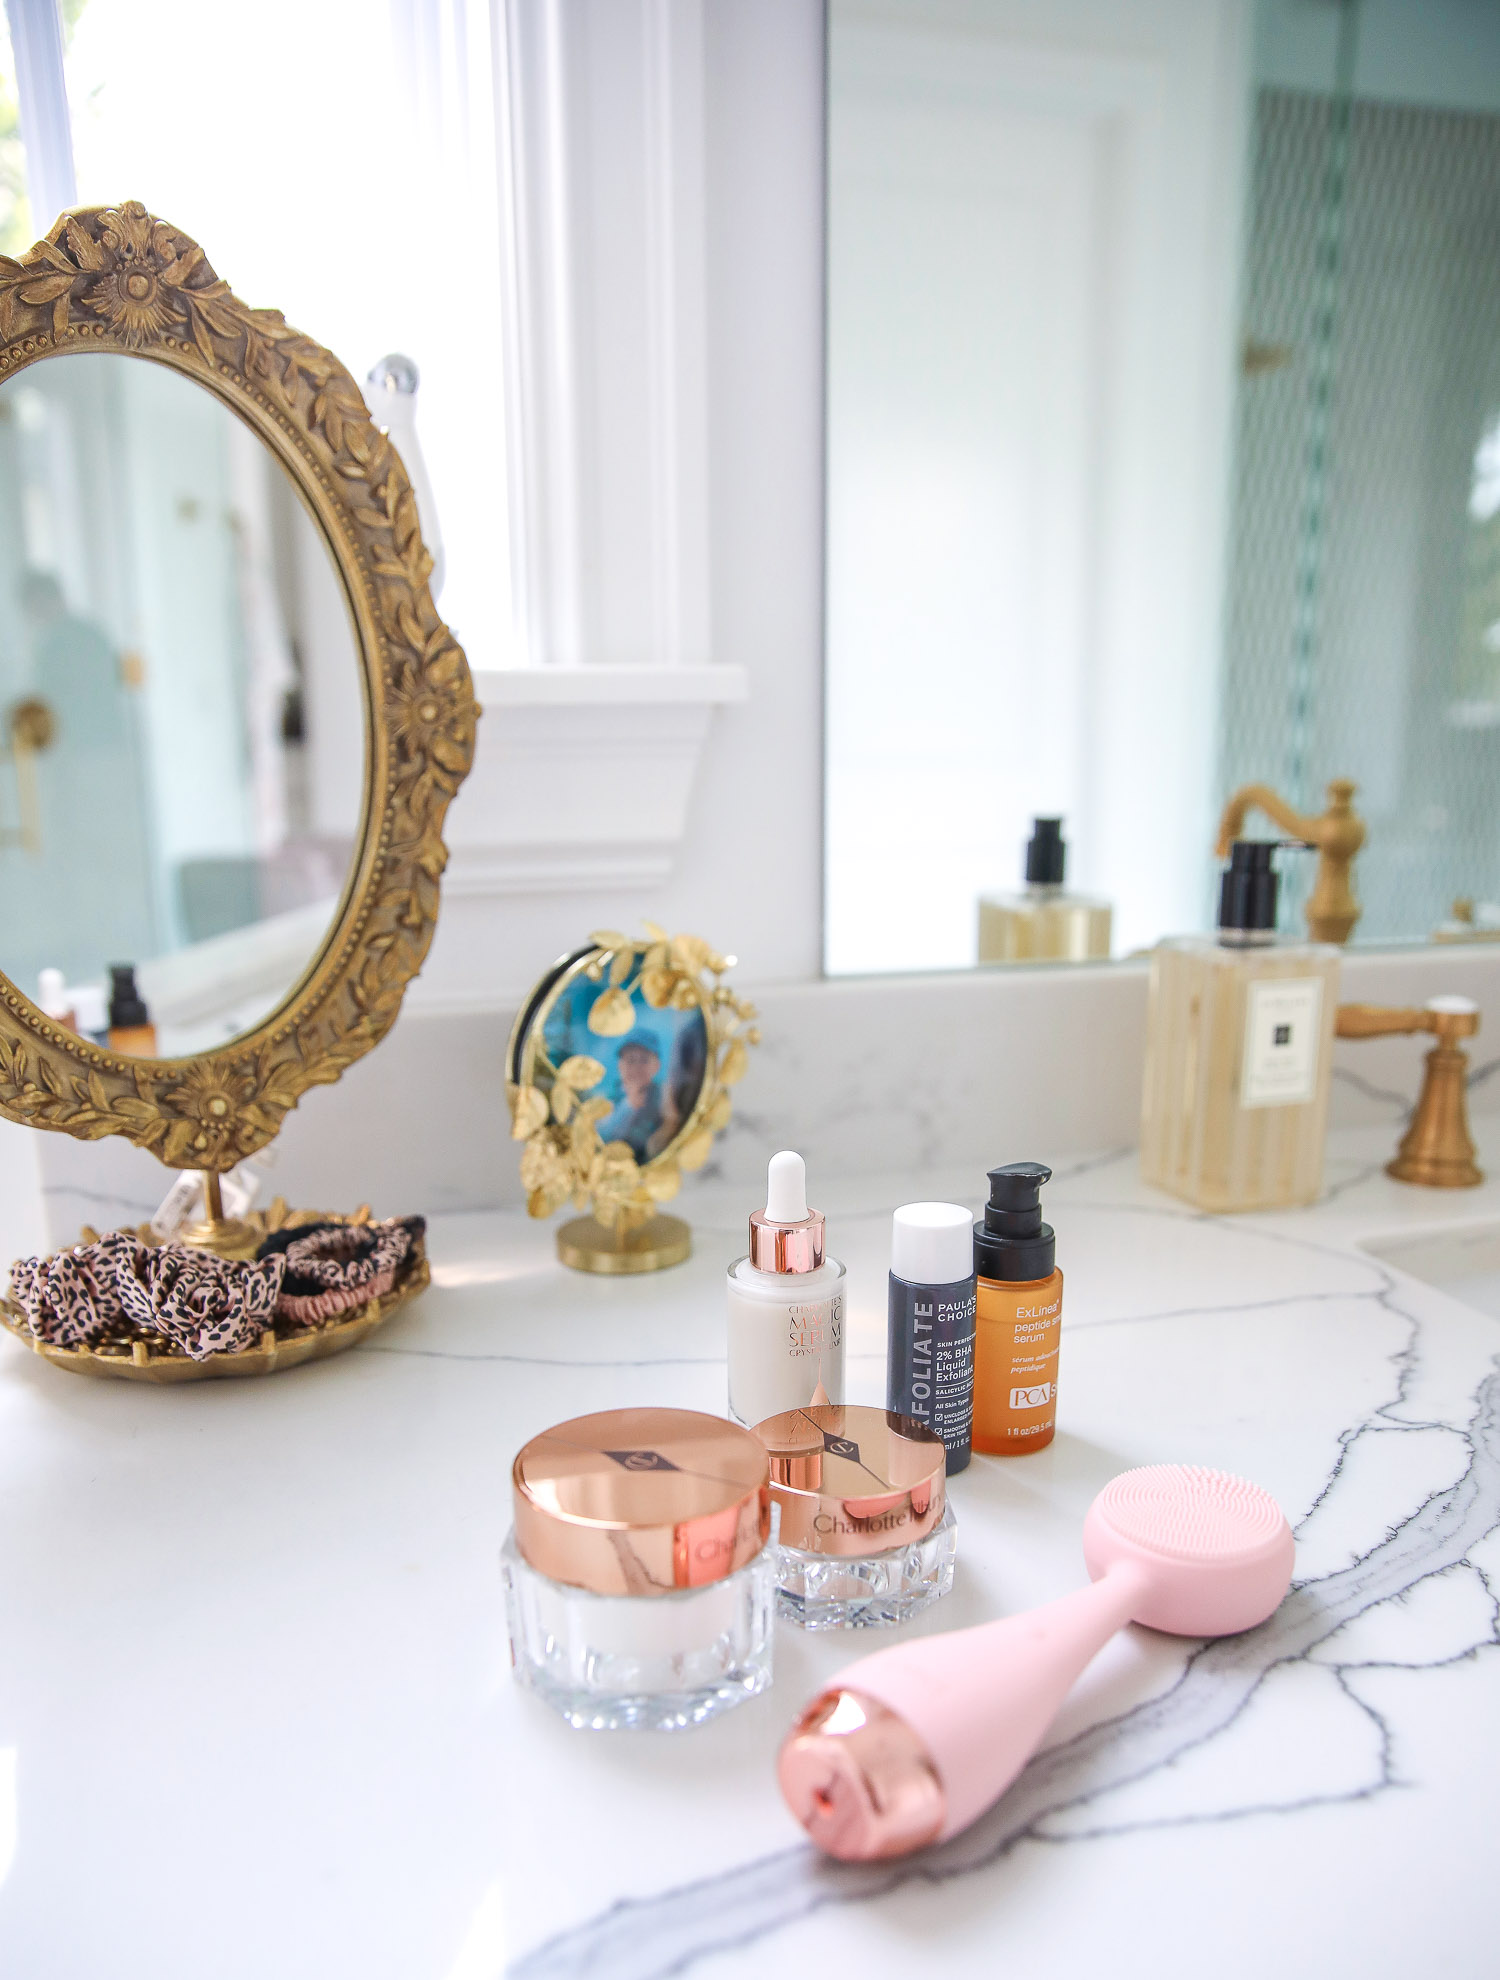 Emily gemma master bathroom, Nordstrom anniversary sale 2021 beauty must haves, anthropologie bathrom decor 2021, pinterest bathroom all white gold | Nordstrom Anniversary Sale 2021 by popular US life and style blog, The Sweetest Thing: image of a silicone face scrubber, gold filigree hand mirror, and skincare products on a white marble counter.